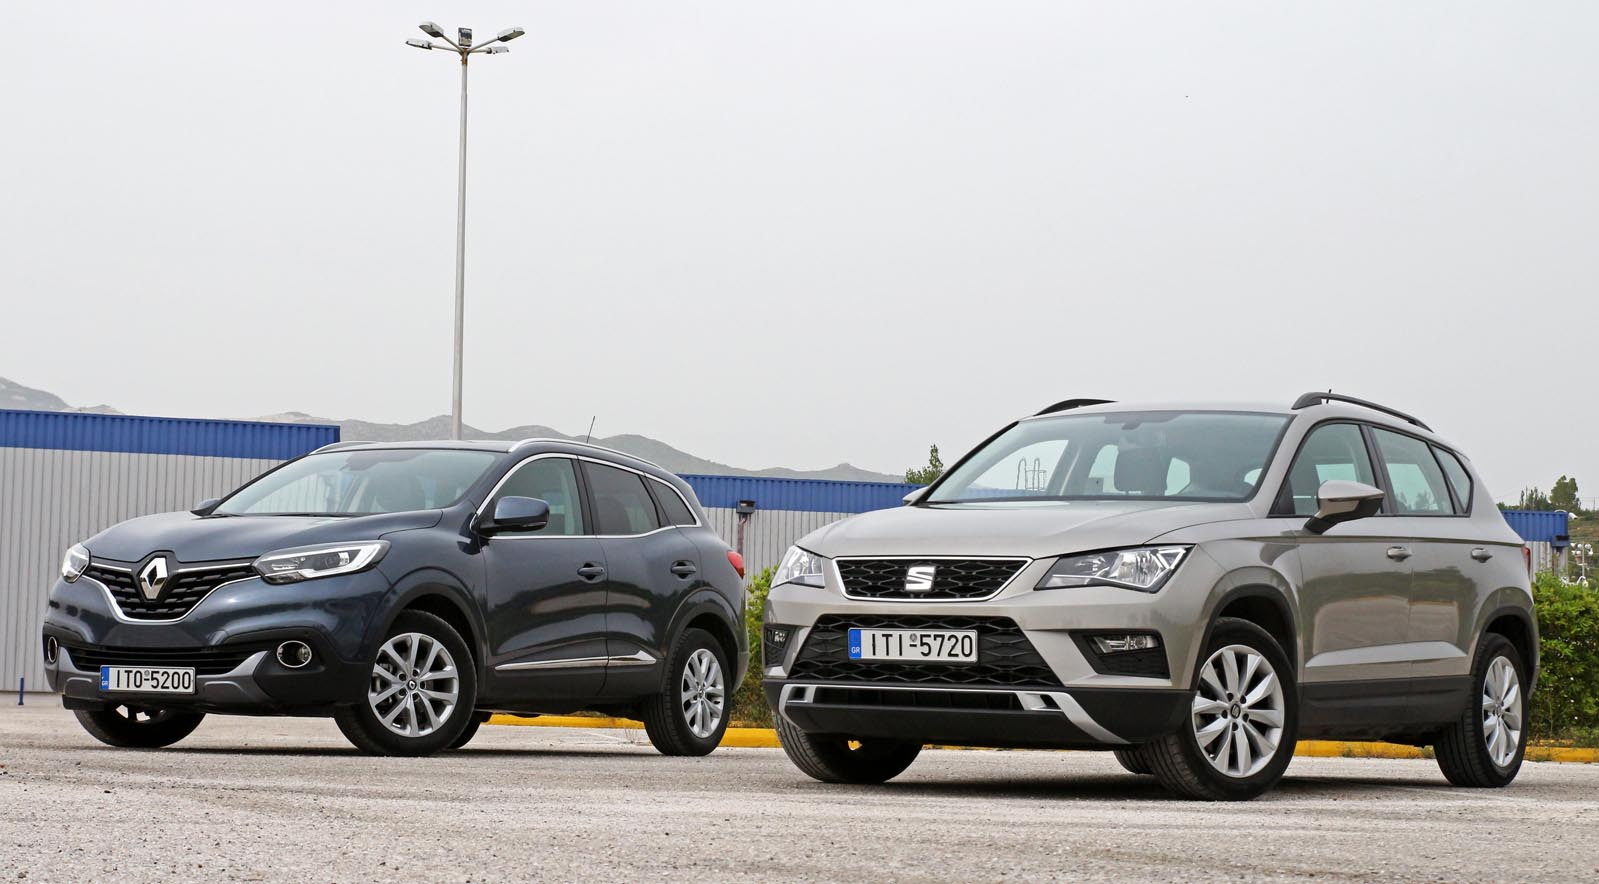 Photo of Renault Kadjar 1.2 TCe vs SEAT Ateca 1.0 TSI [test drive]